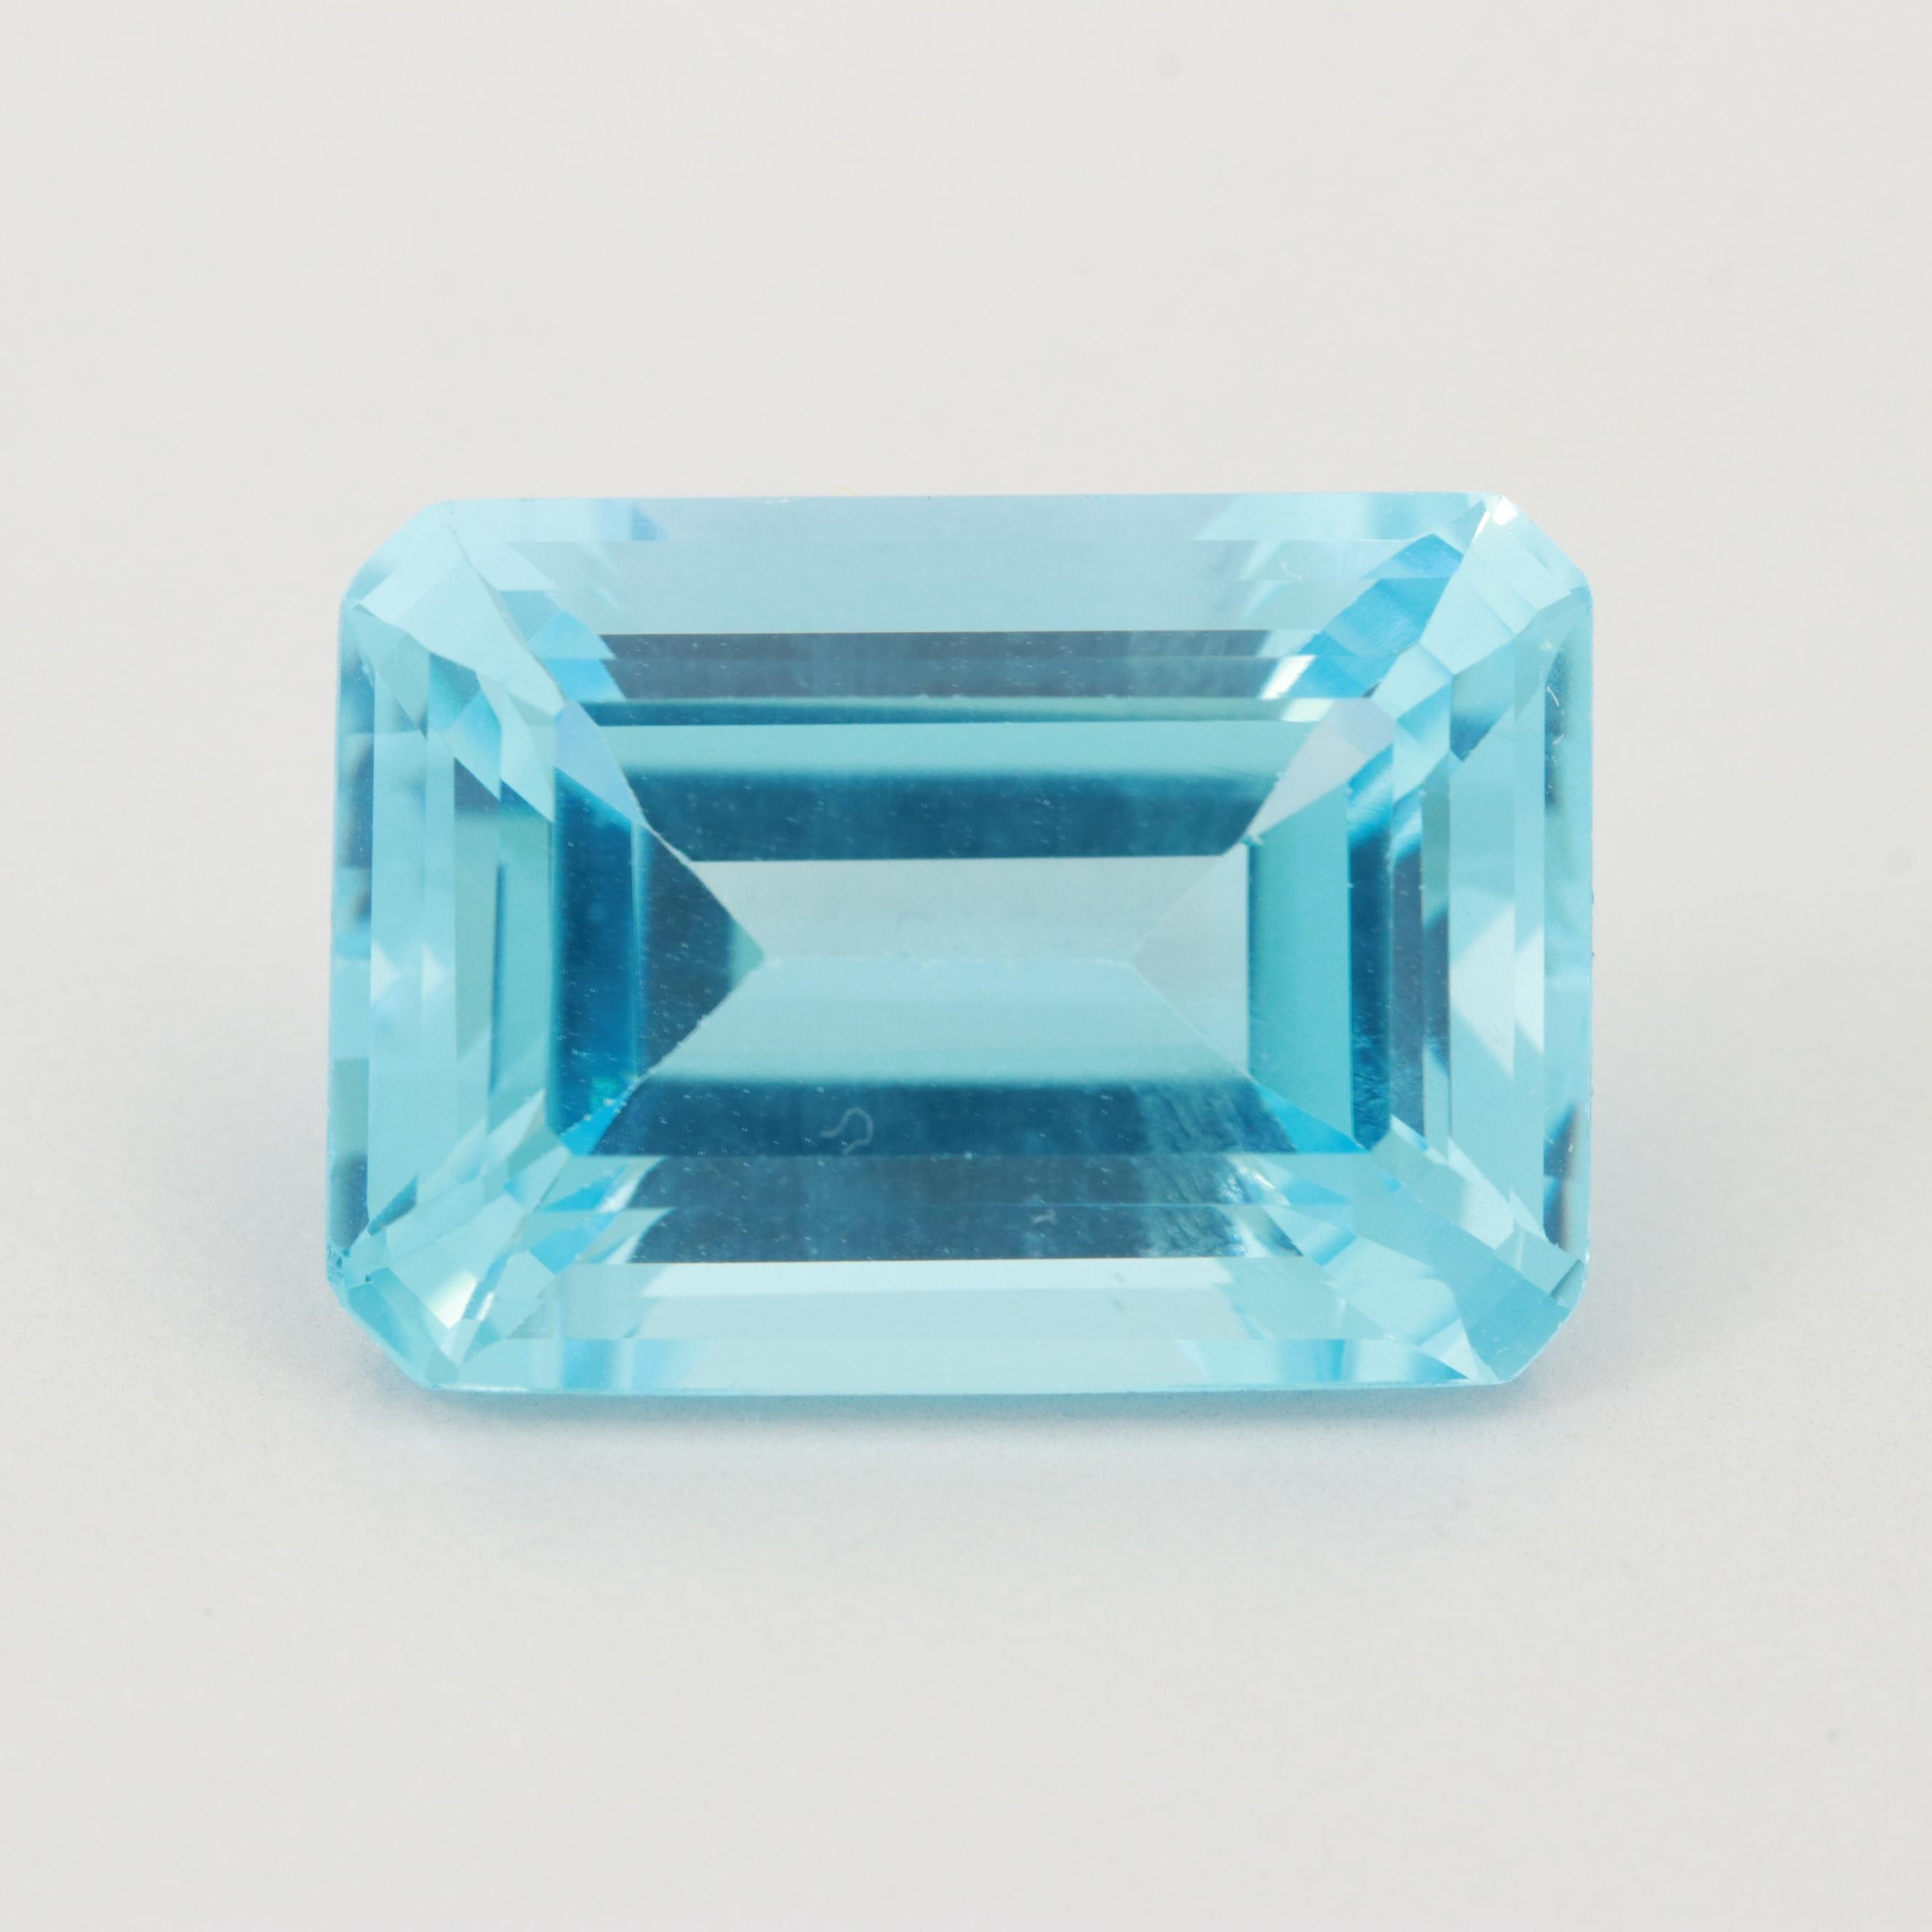 Loose 19.35 CT Blue Topaz Gemstone